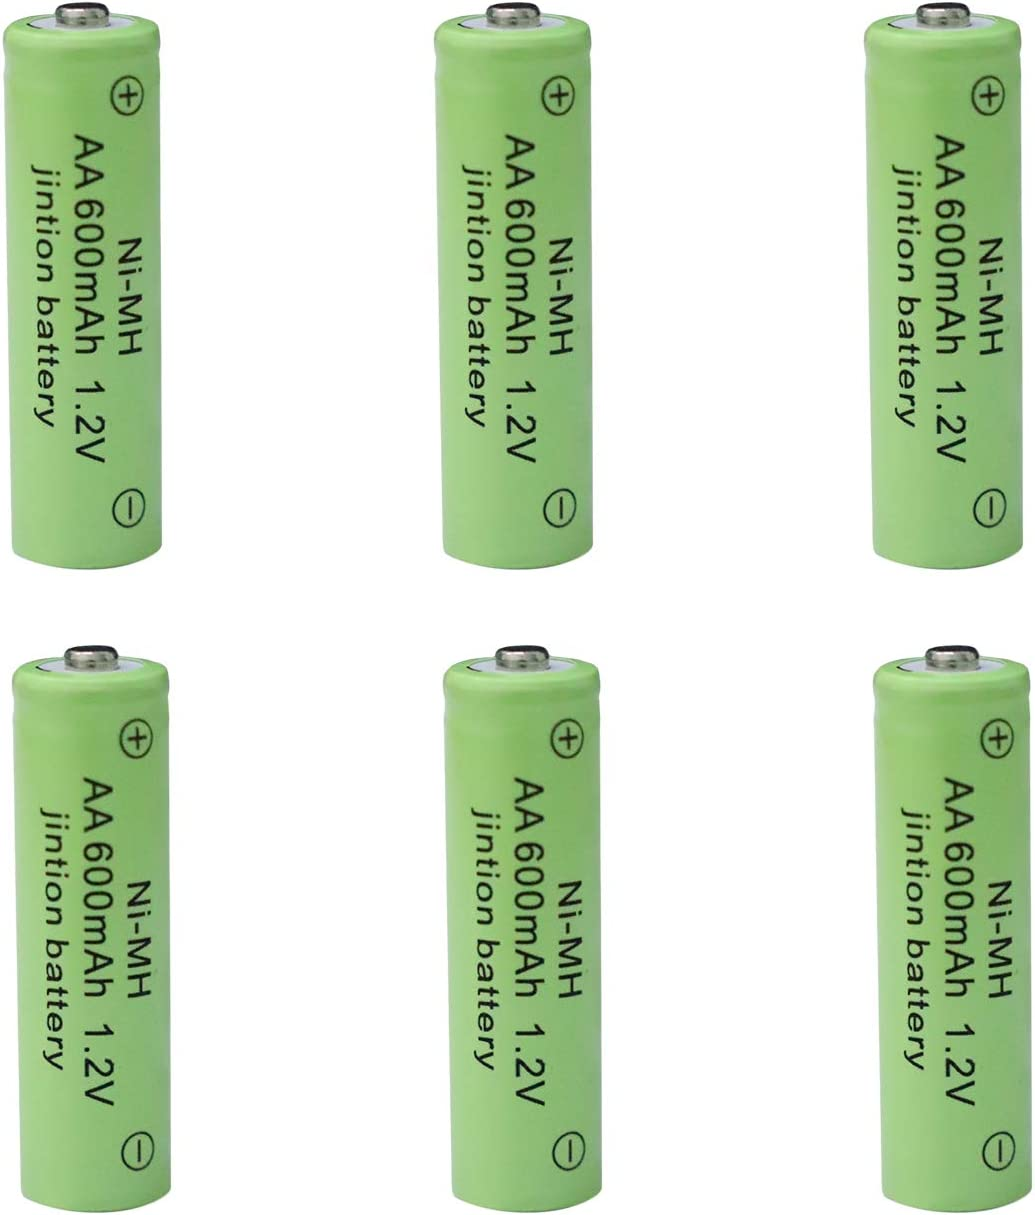 AA Rechargeable Batteries 1.2V 600mAh High Capacity Ni-MH for Solar Lights Garden Lantern (Pack of 6)